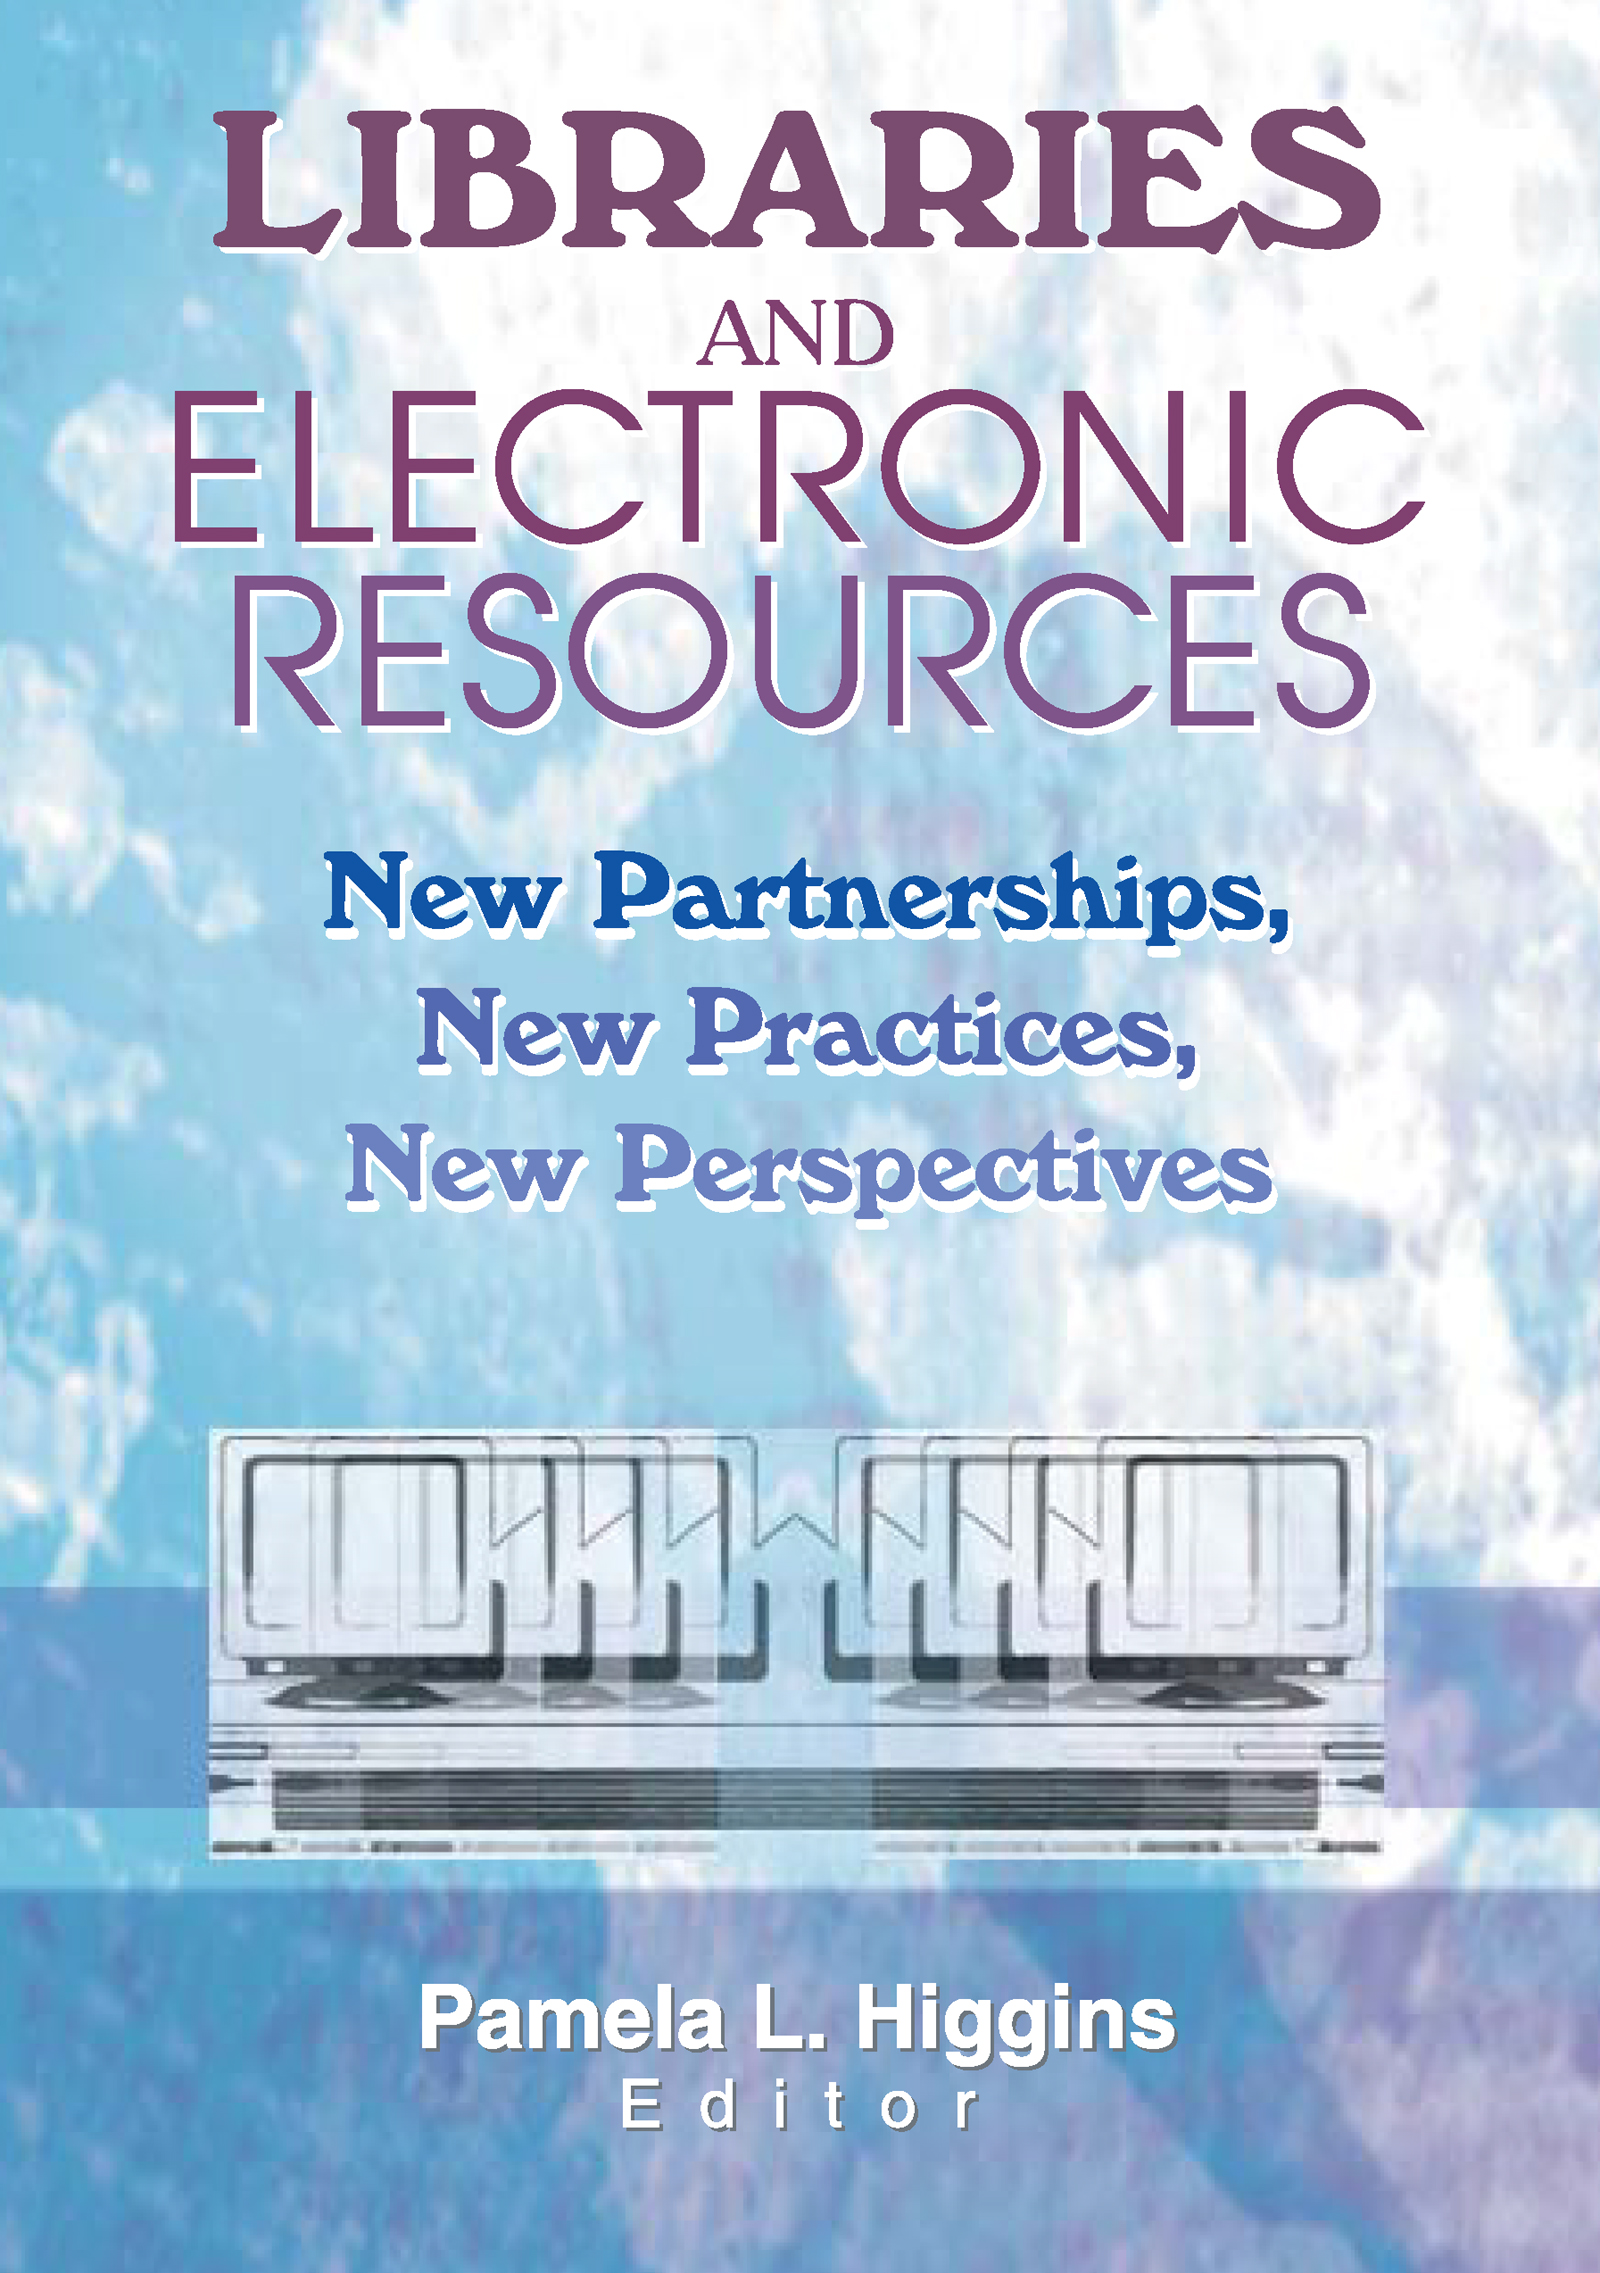 Libraries and Electronic Resources: New Partnerships, New Practices, New Perspectives, 1st Edition (Paperback) book cover